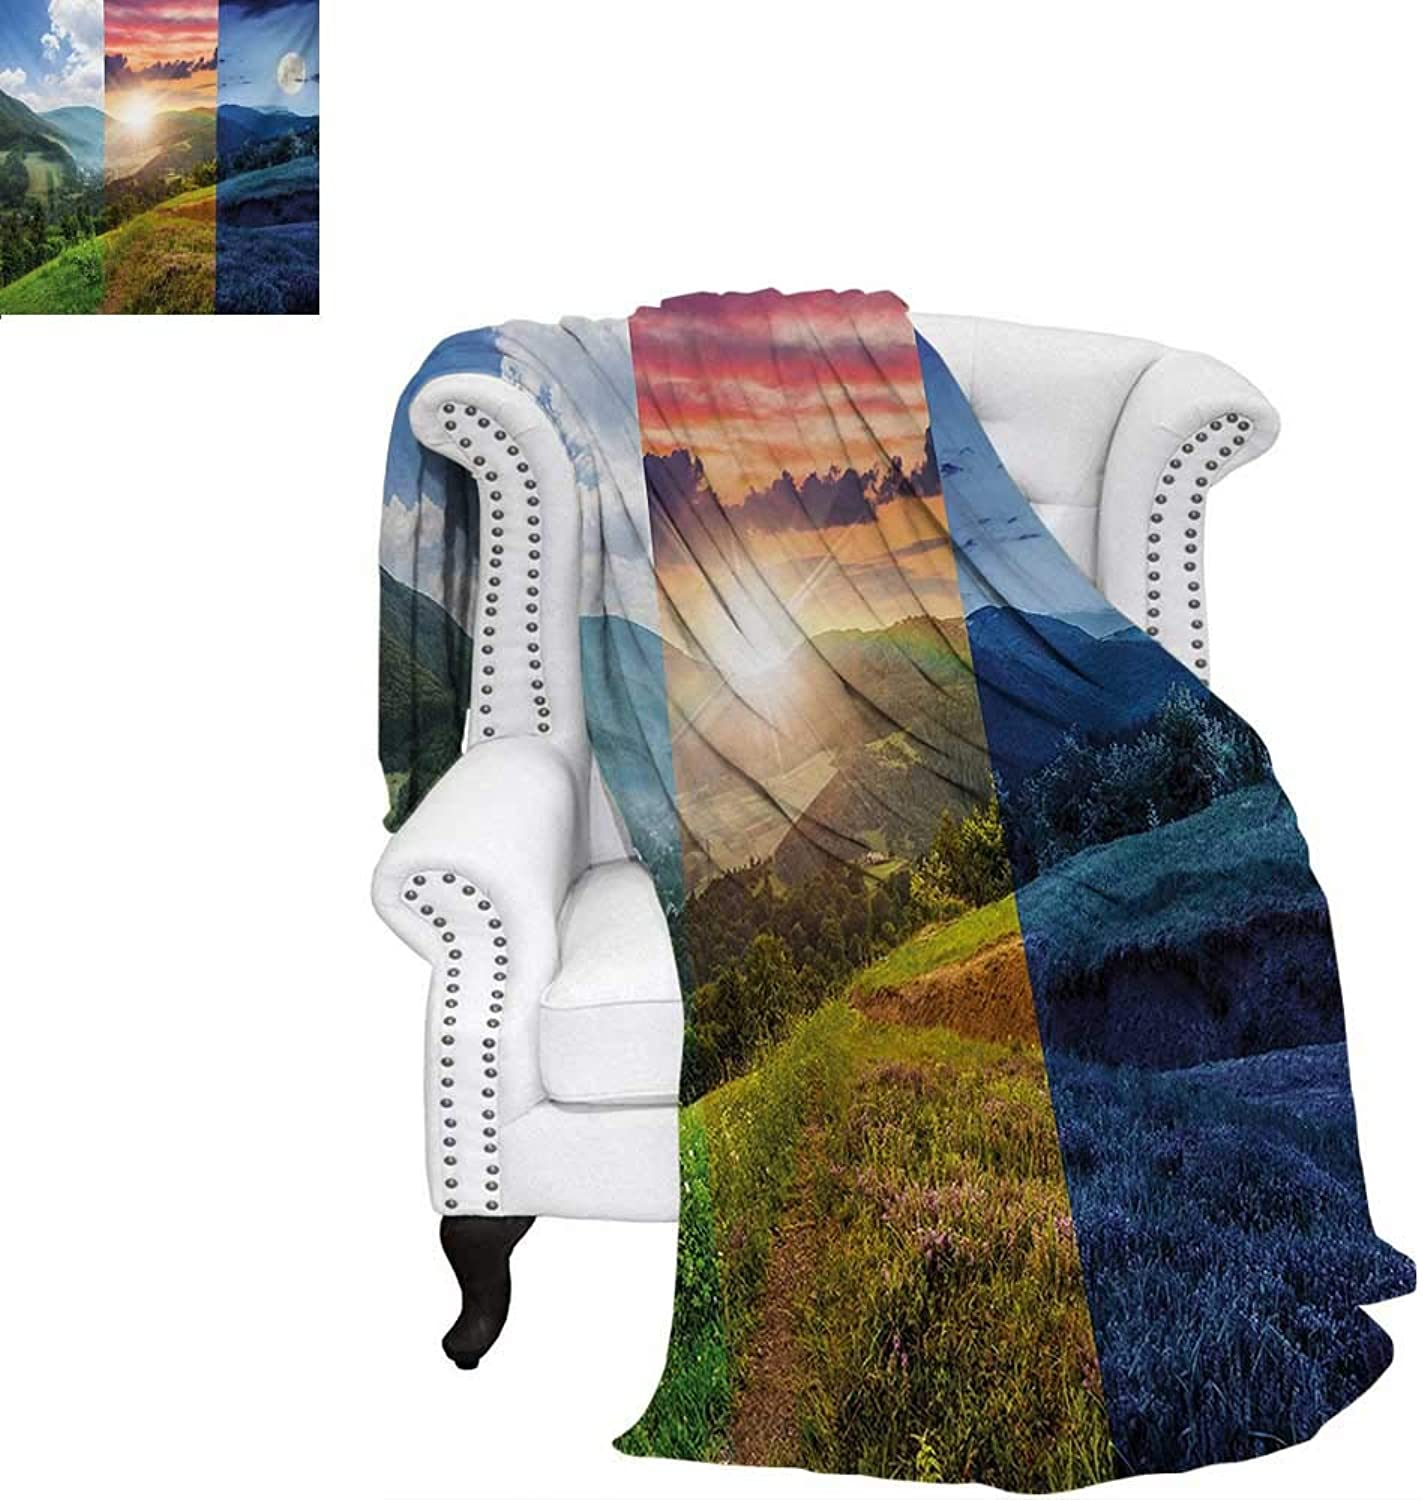 Warmfamily Nature Print Artwork Image Foggy Mountain Forest View in Various Times The Day Idyllic Nature Collage Art Warm Microfiber All Season Blanket 62 x60  Multicolor